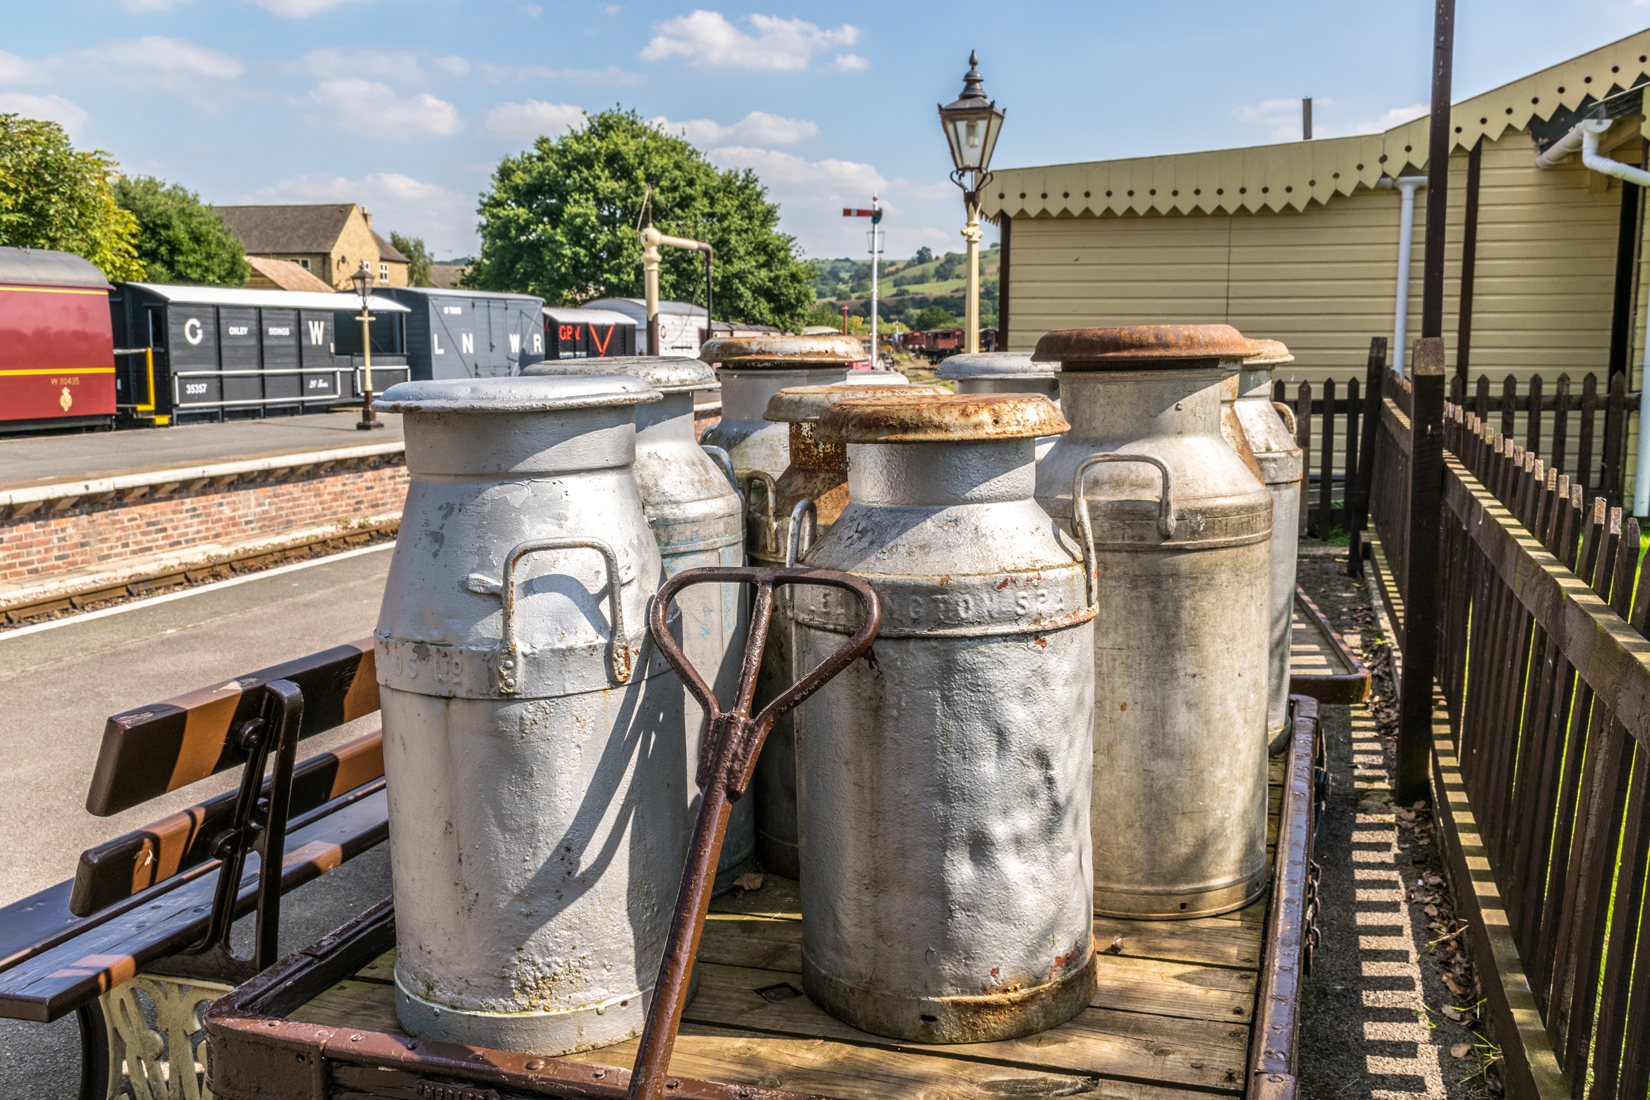 Restored milk churns on display at Winchcombe